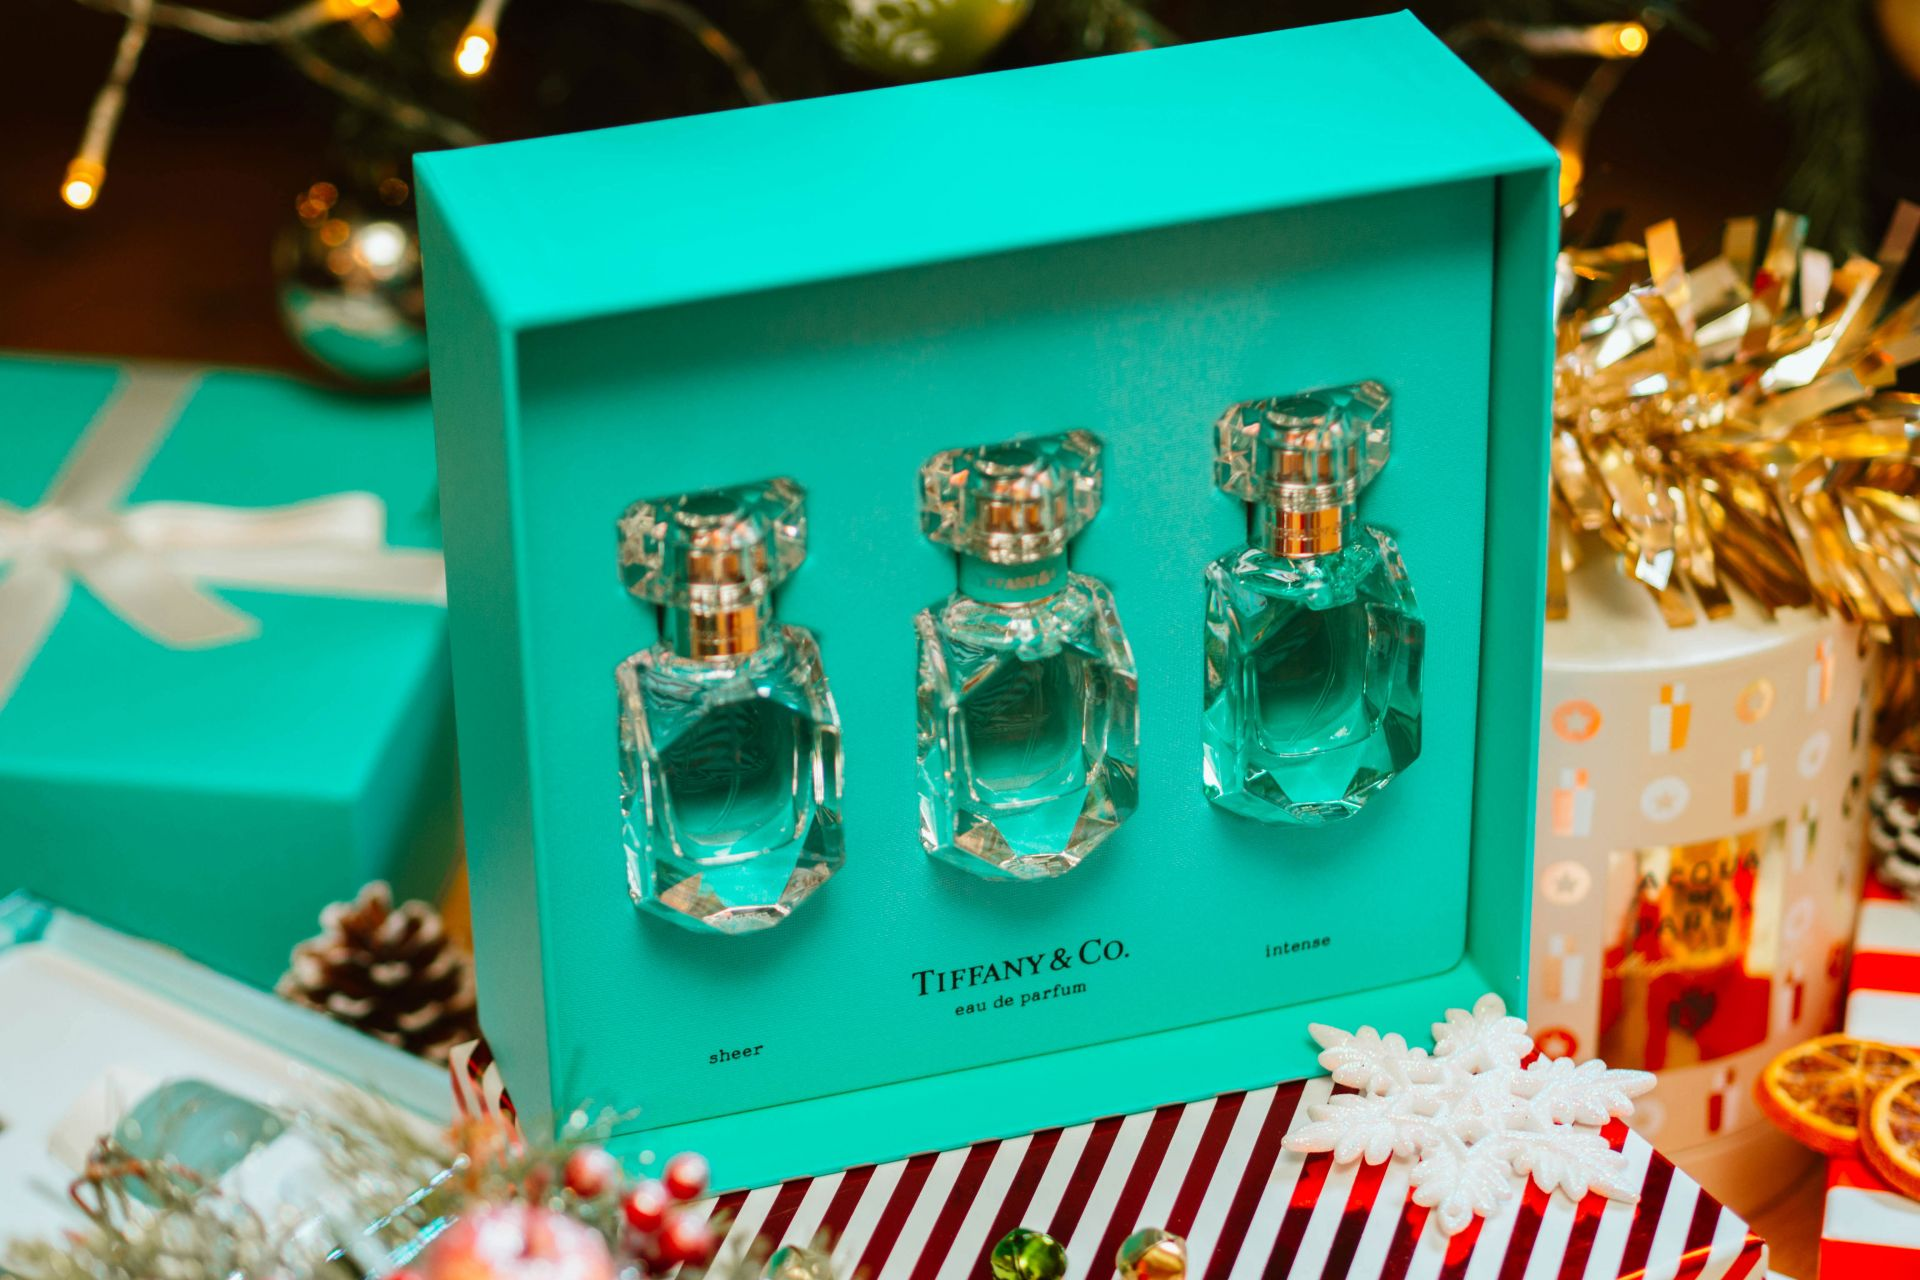 Tiffany Fragrance Trio